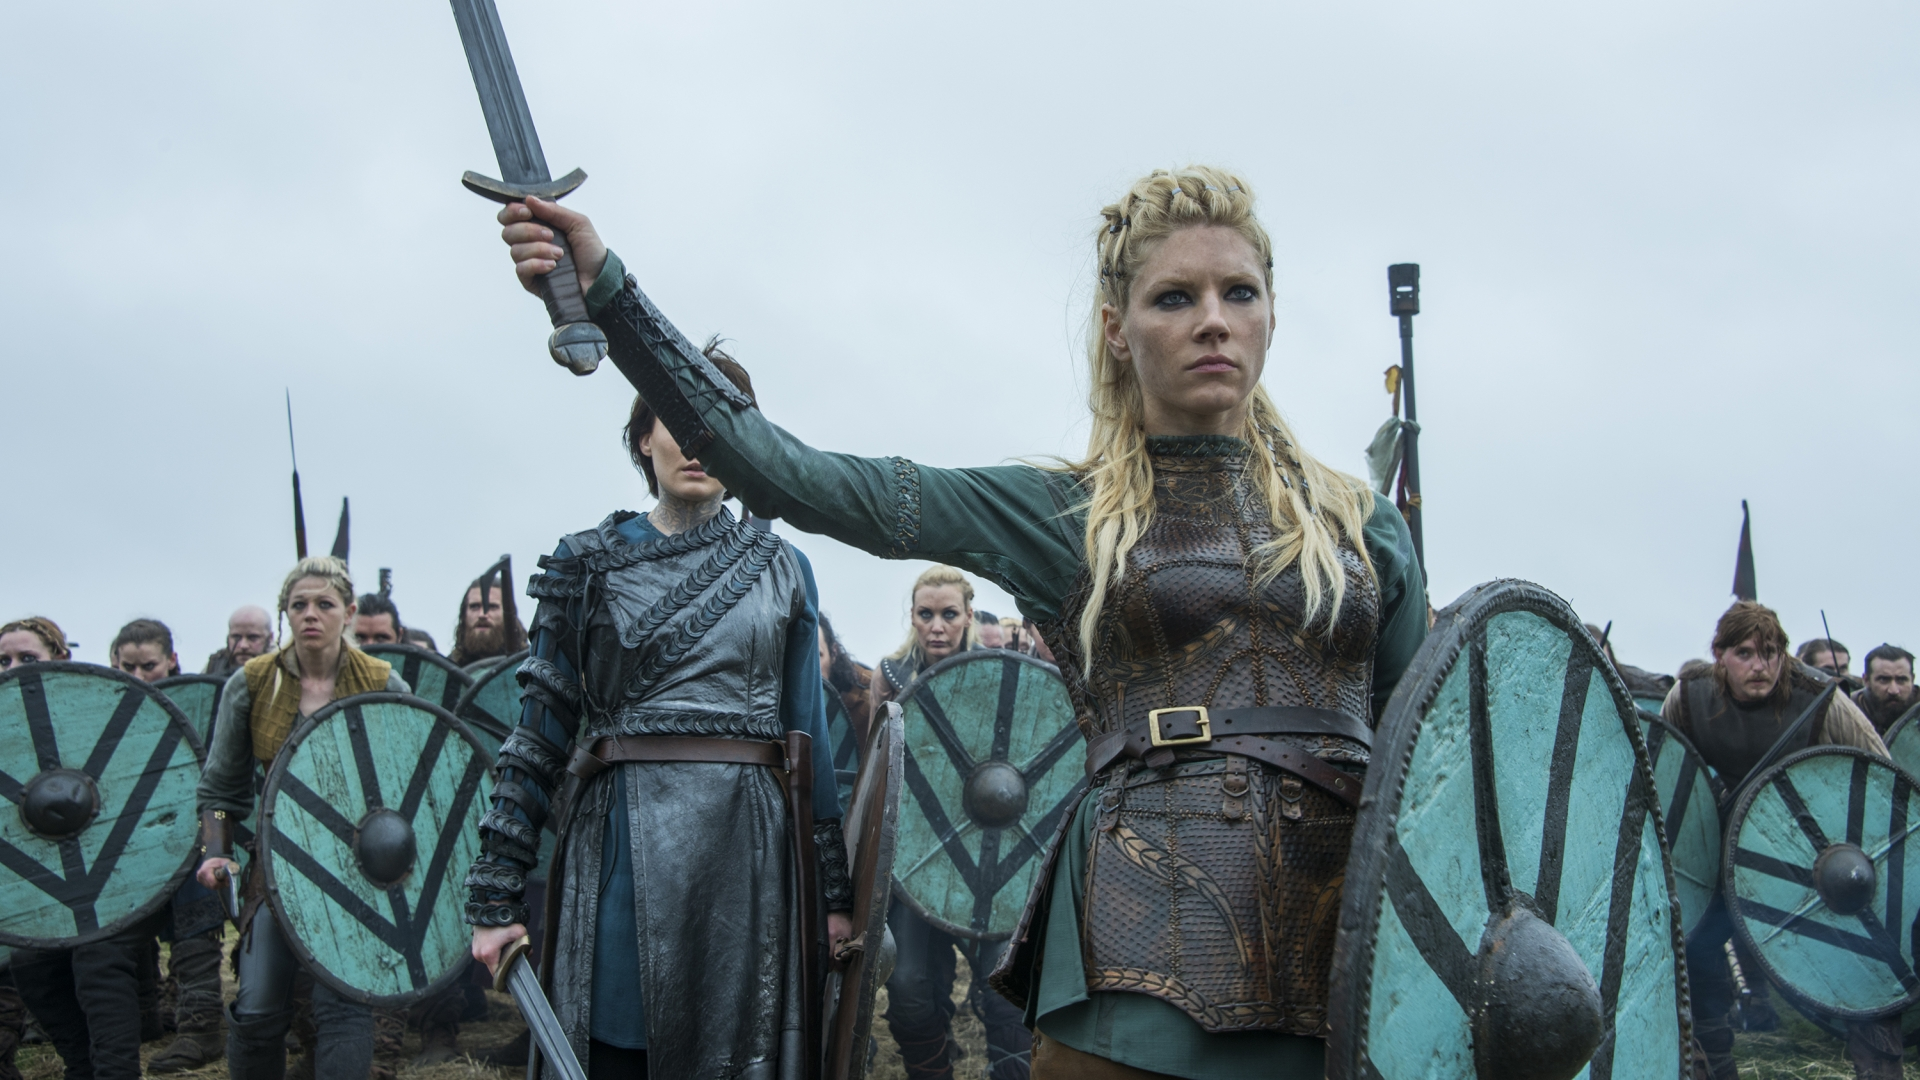 Lagertha, portrayed by Katheryn Winnick, leading a group of Viking warriors in Season 4 of 'Vikings'. (Credit: Jonathan Hession)